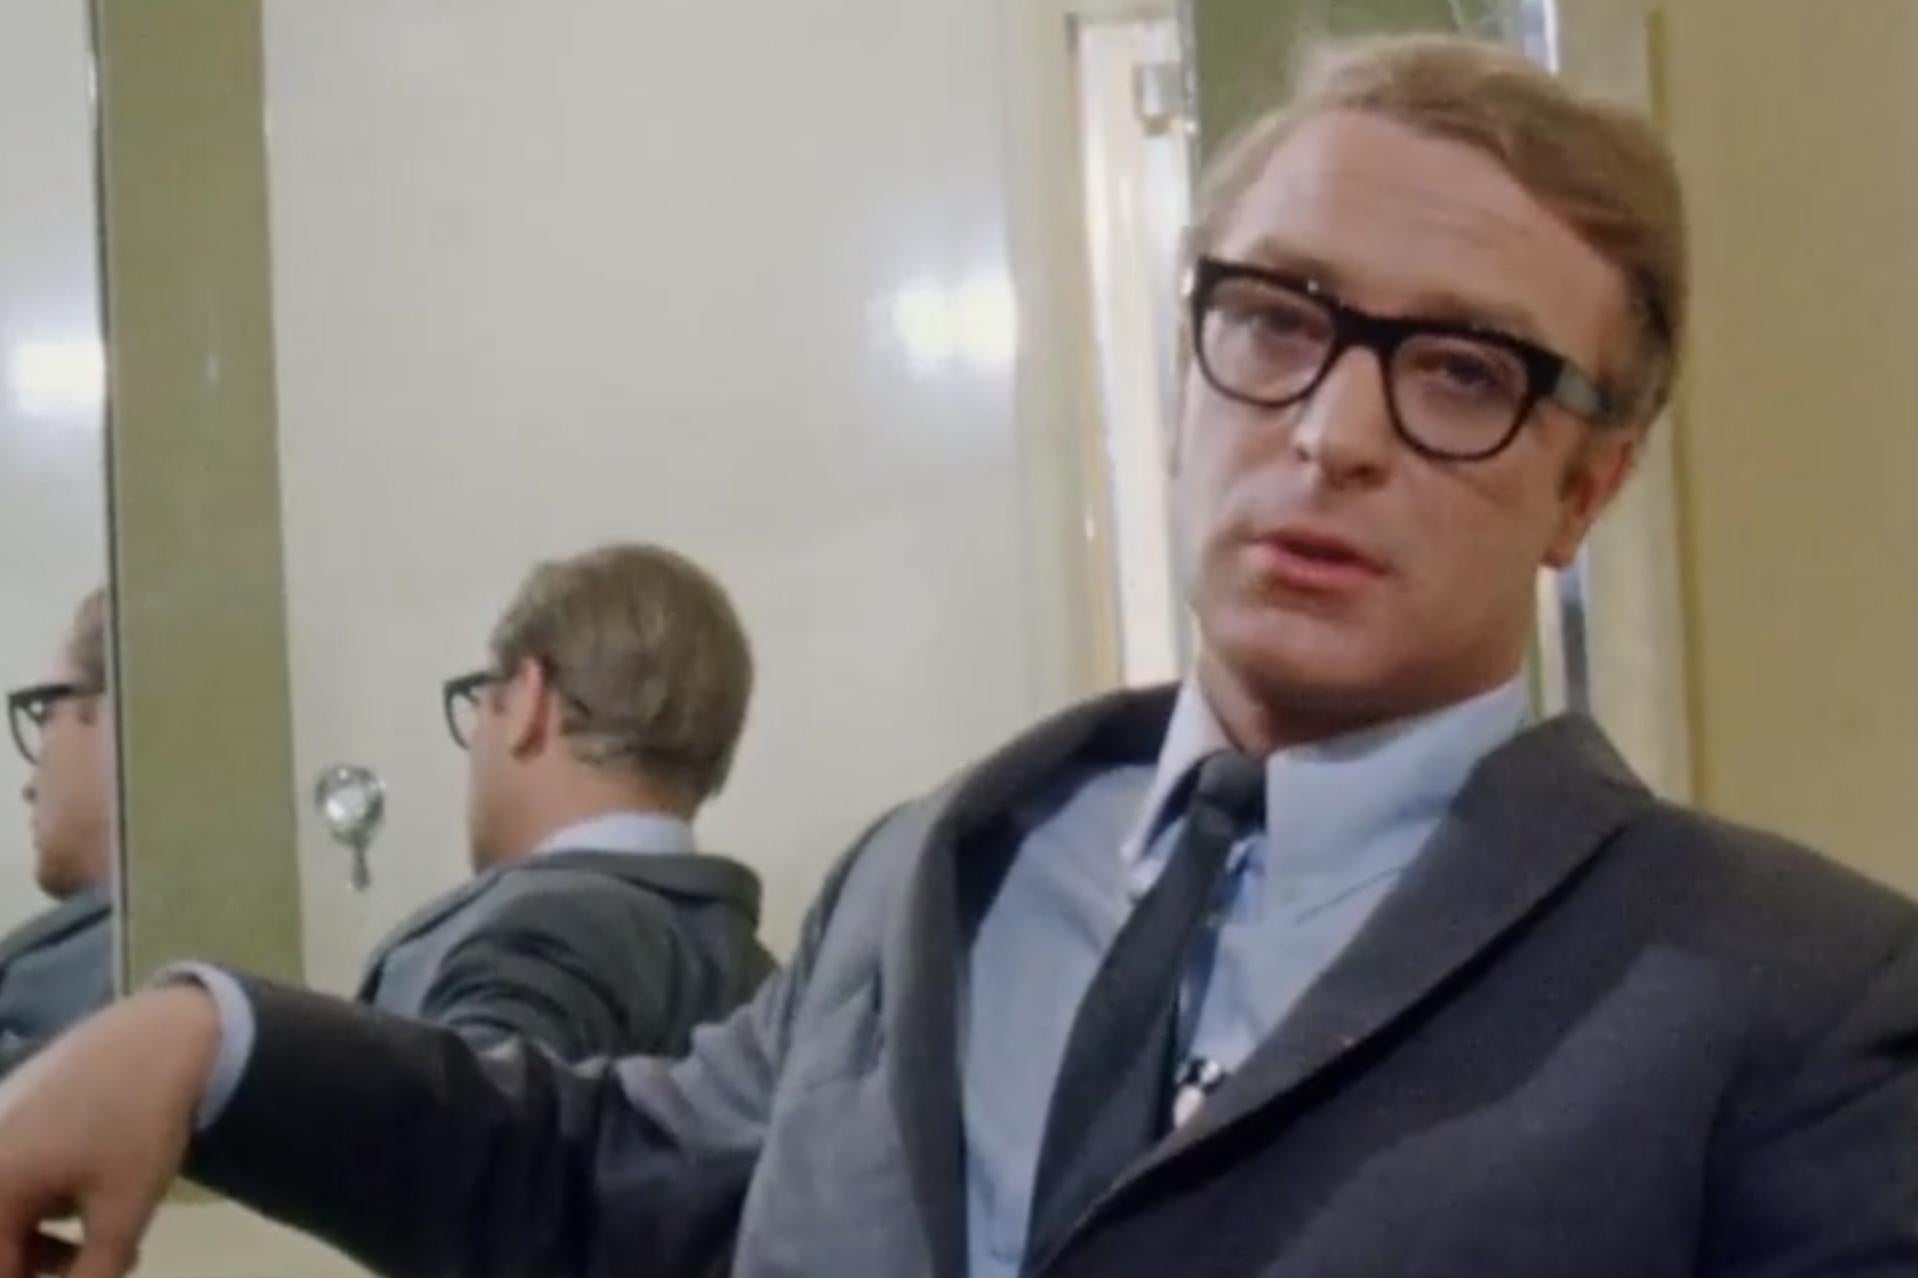 Michael Caine rallies against the establishment in exclusive clip from My Generation documentary